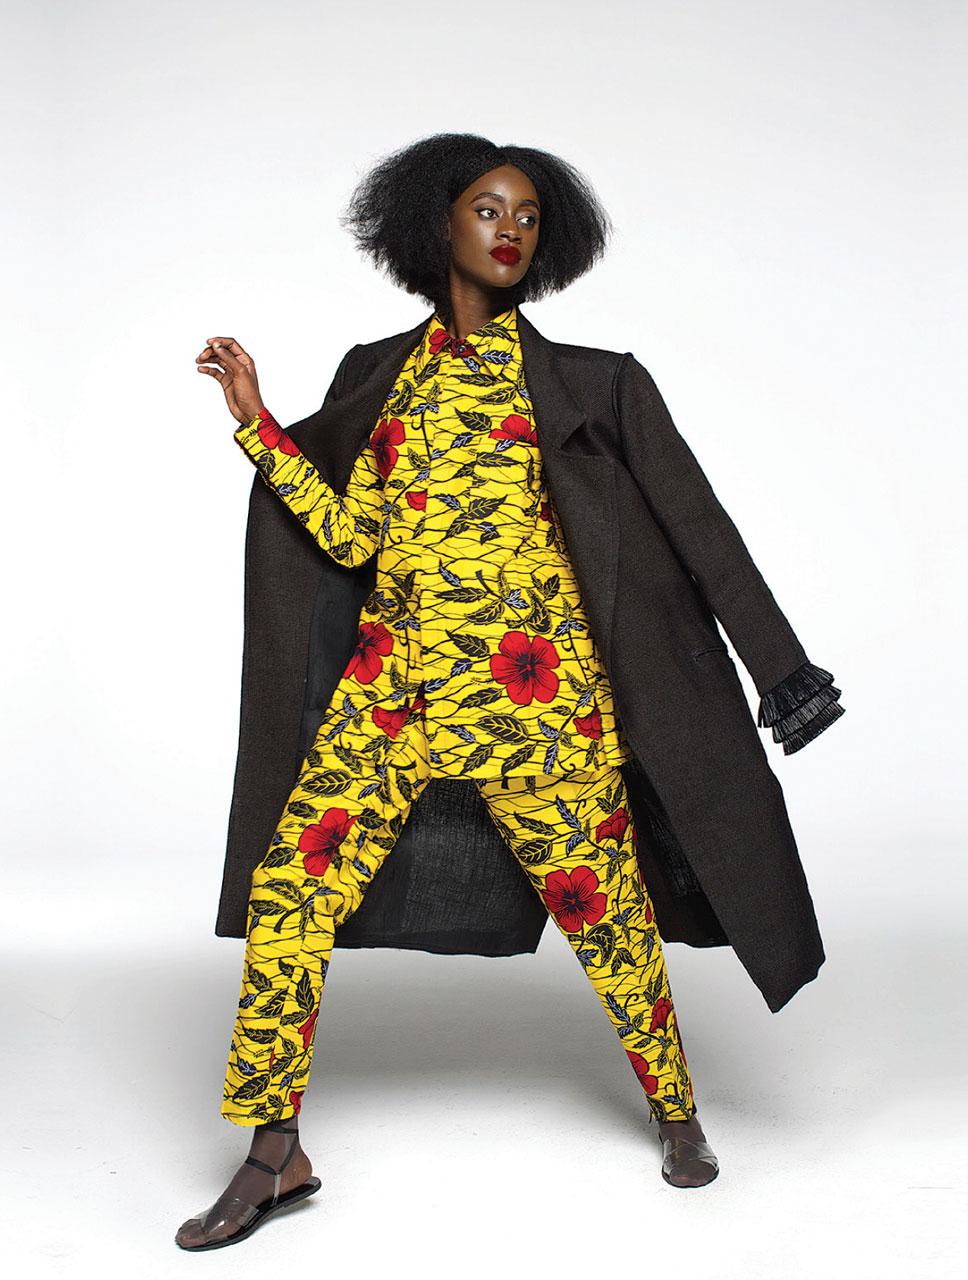 LOZA MALÉOMBHO, DESIGNER. COORDINATED TOP AND BOTTOM  from the designer's fall/winter 2015 lookbook.  Photograph by Daniel Sery. Image © Loza Maléombho.